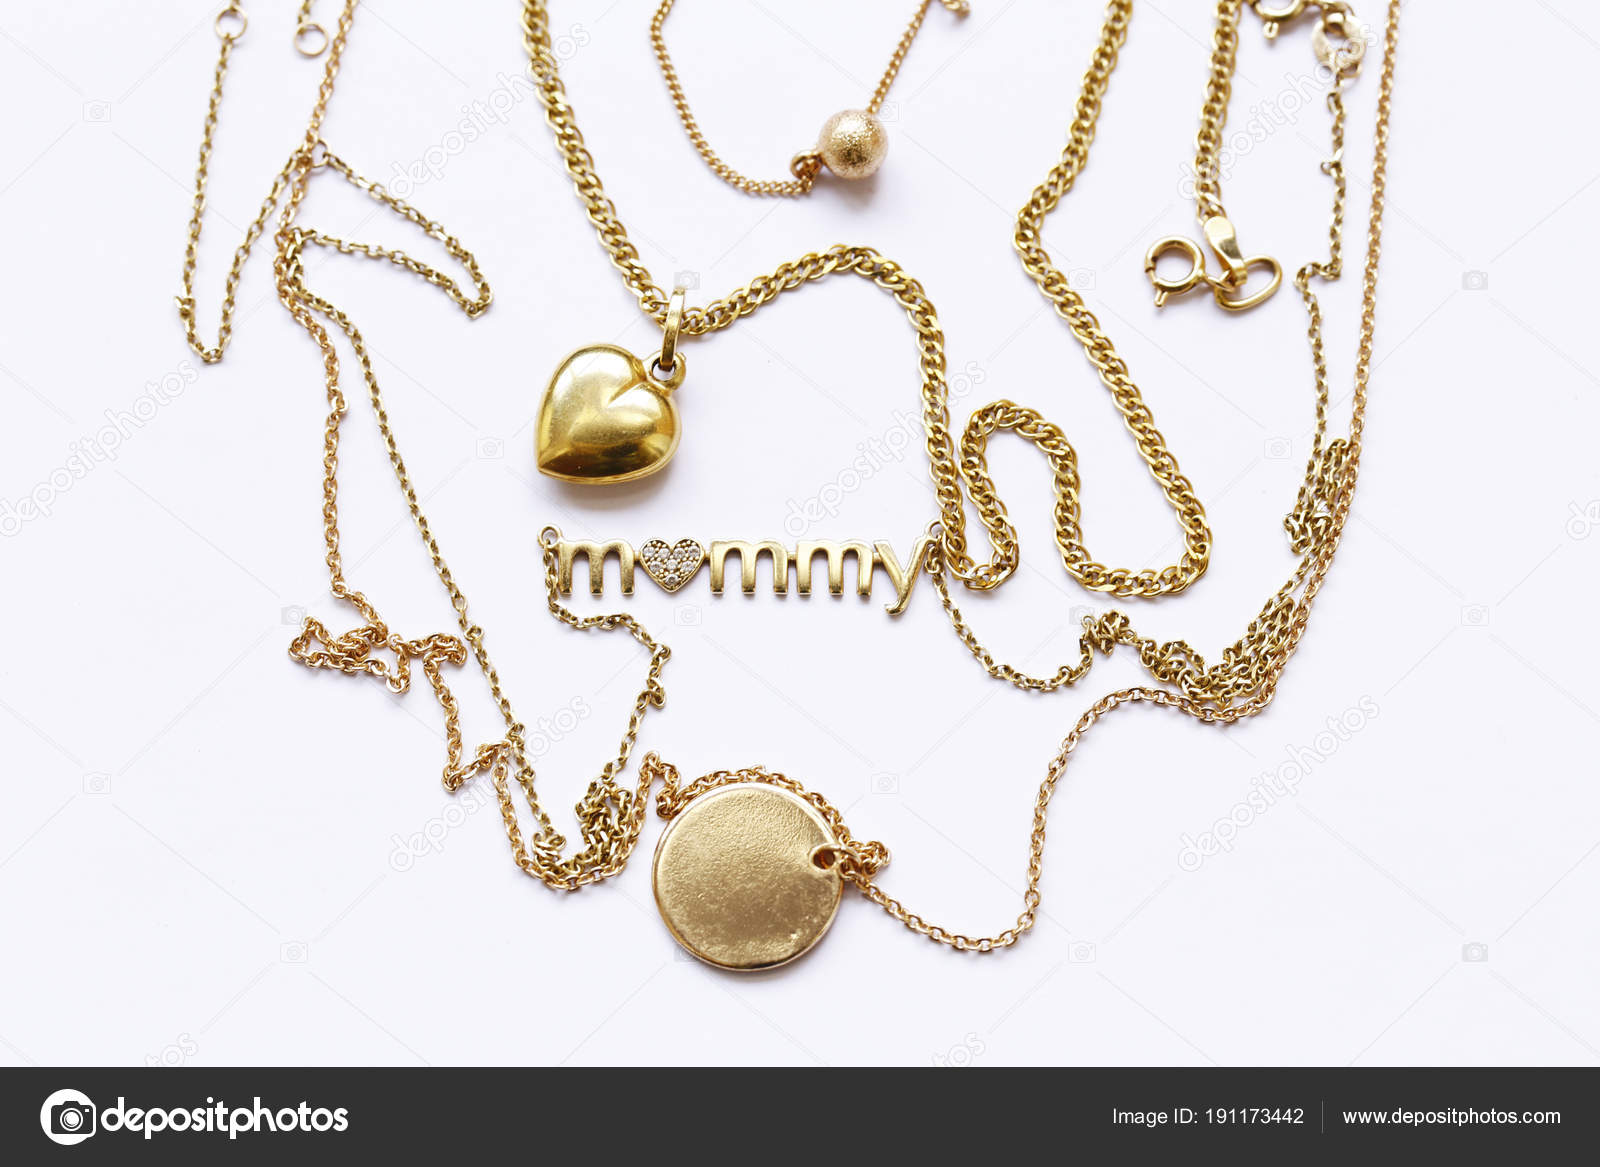 Gold chains necklaces pendants stock photo dream79 191173442 gold chains necklaces pendants stock photo aloadofball Image collections